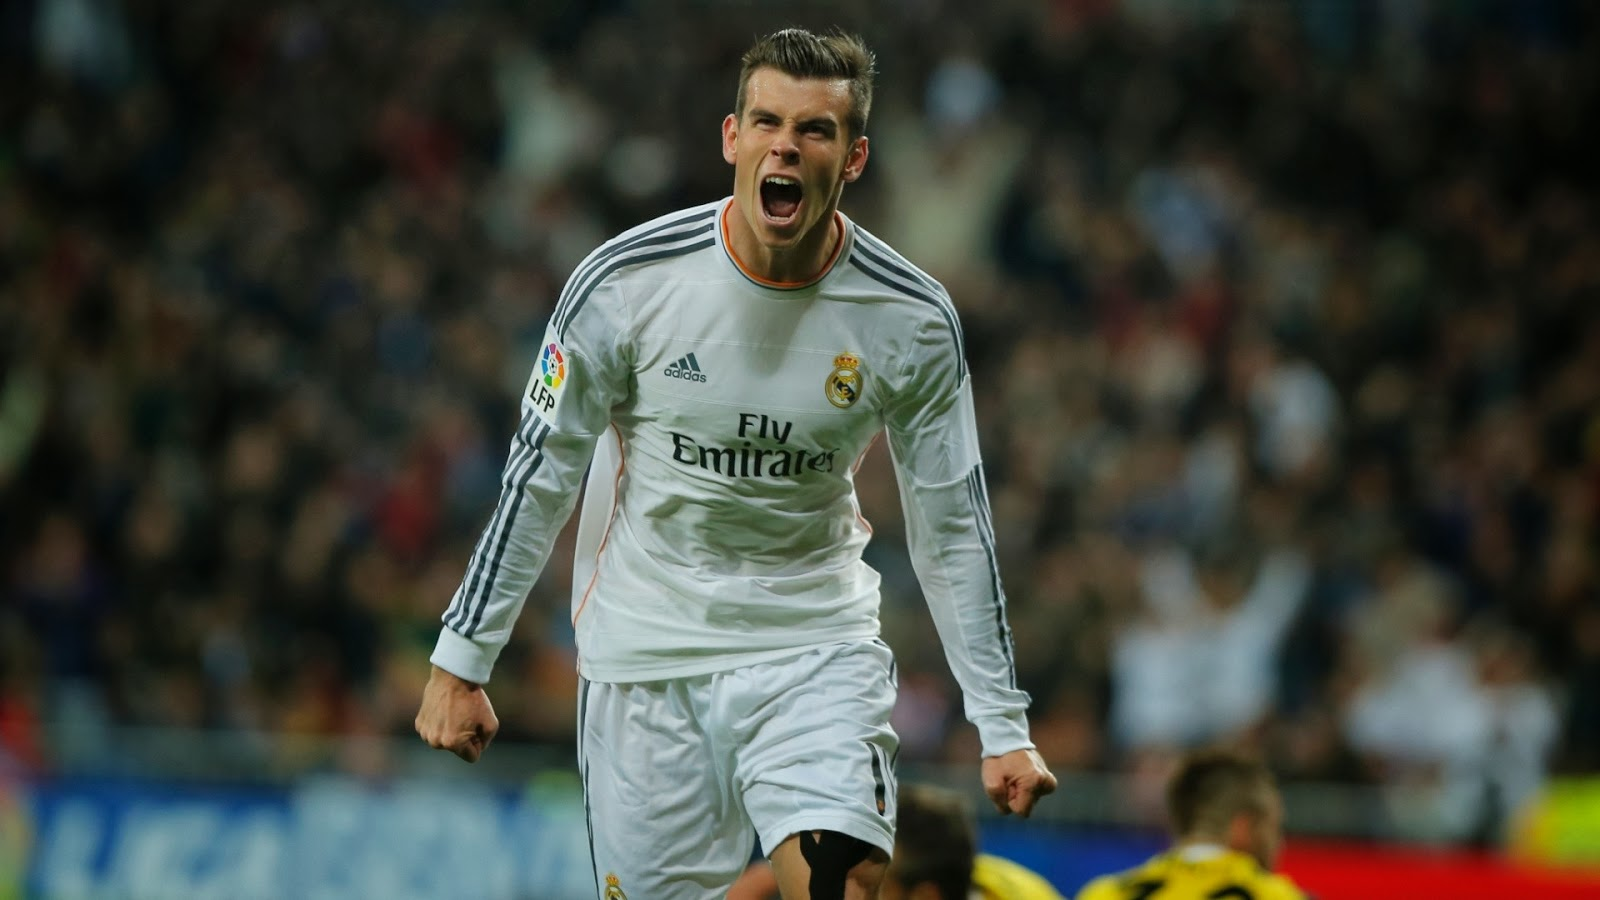 Gareth Bale Football Player Latest HD Wallpapers